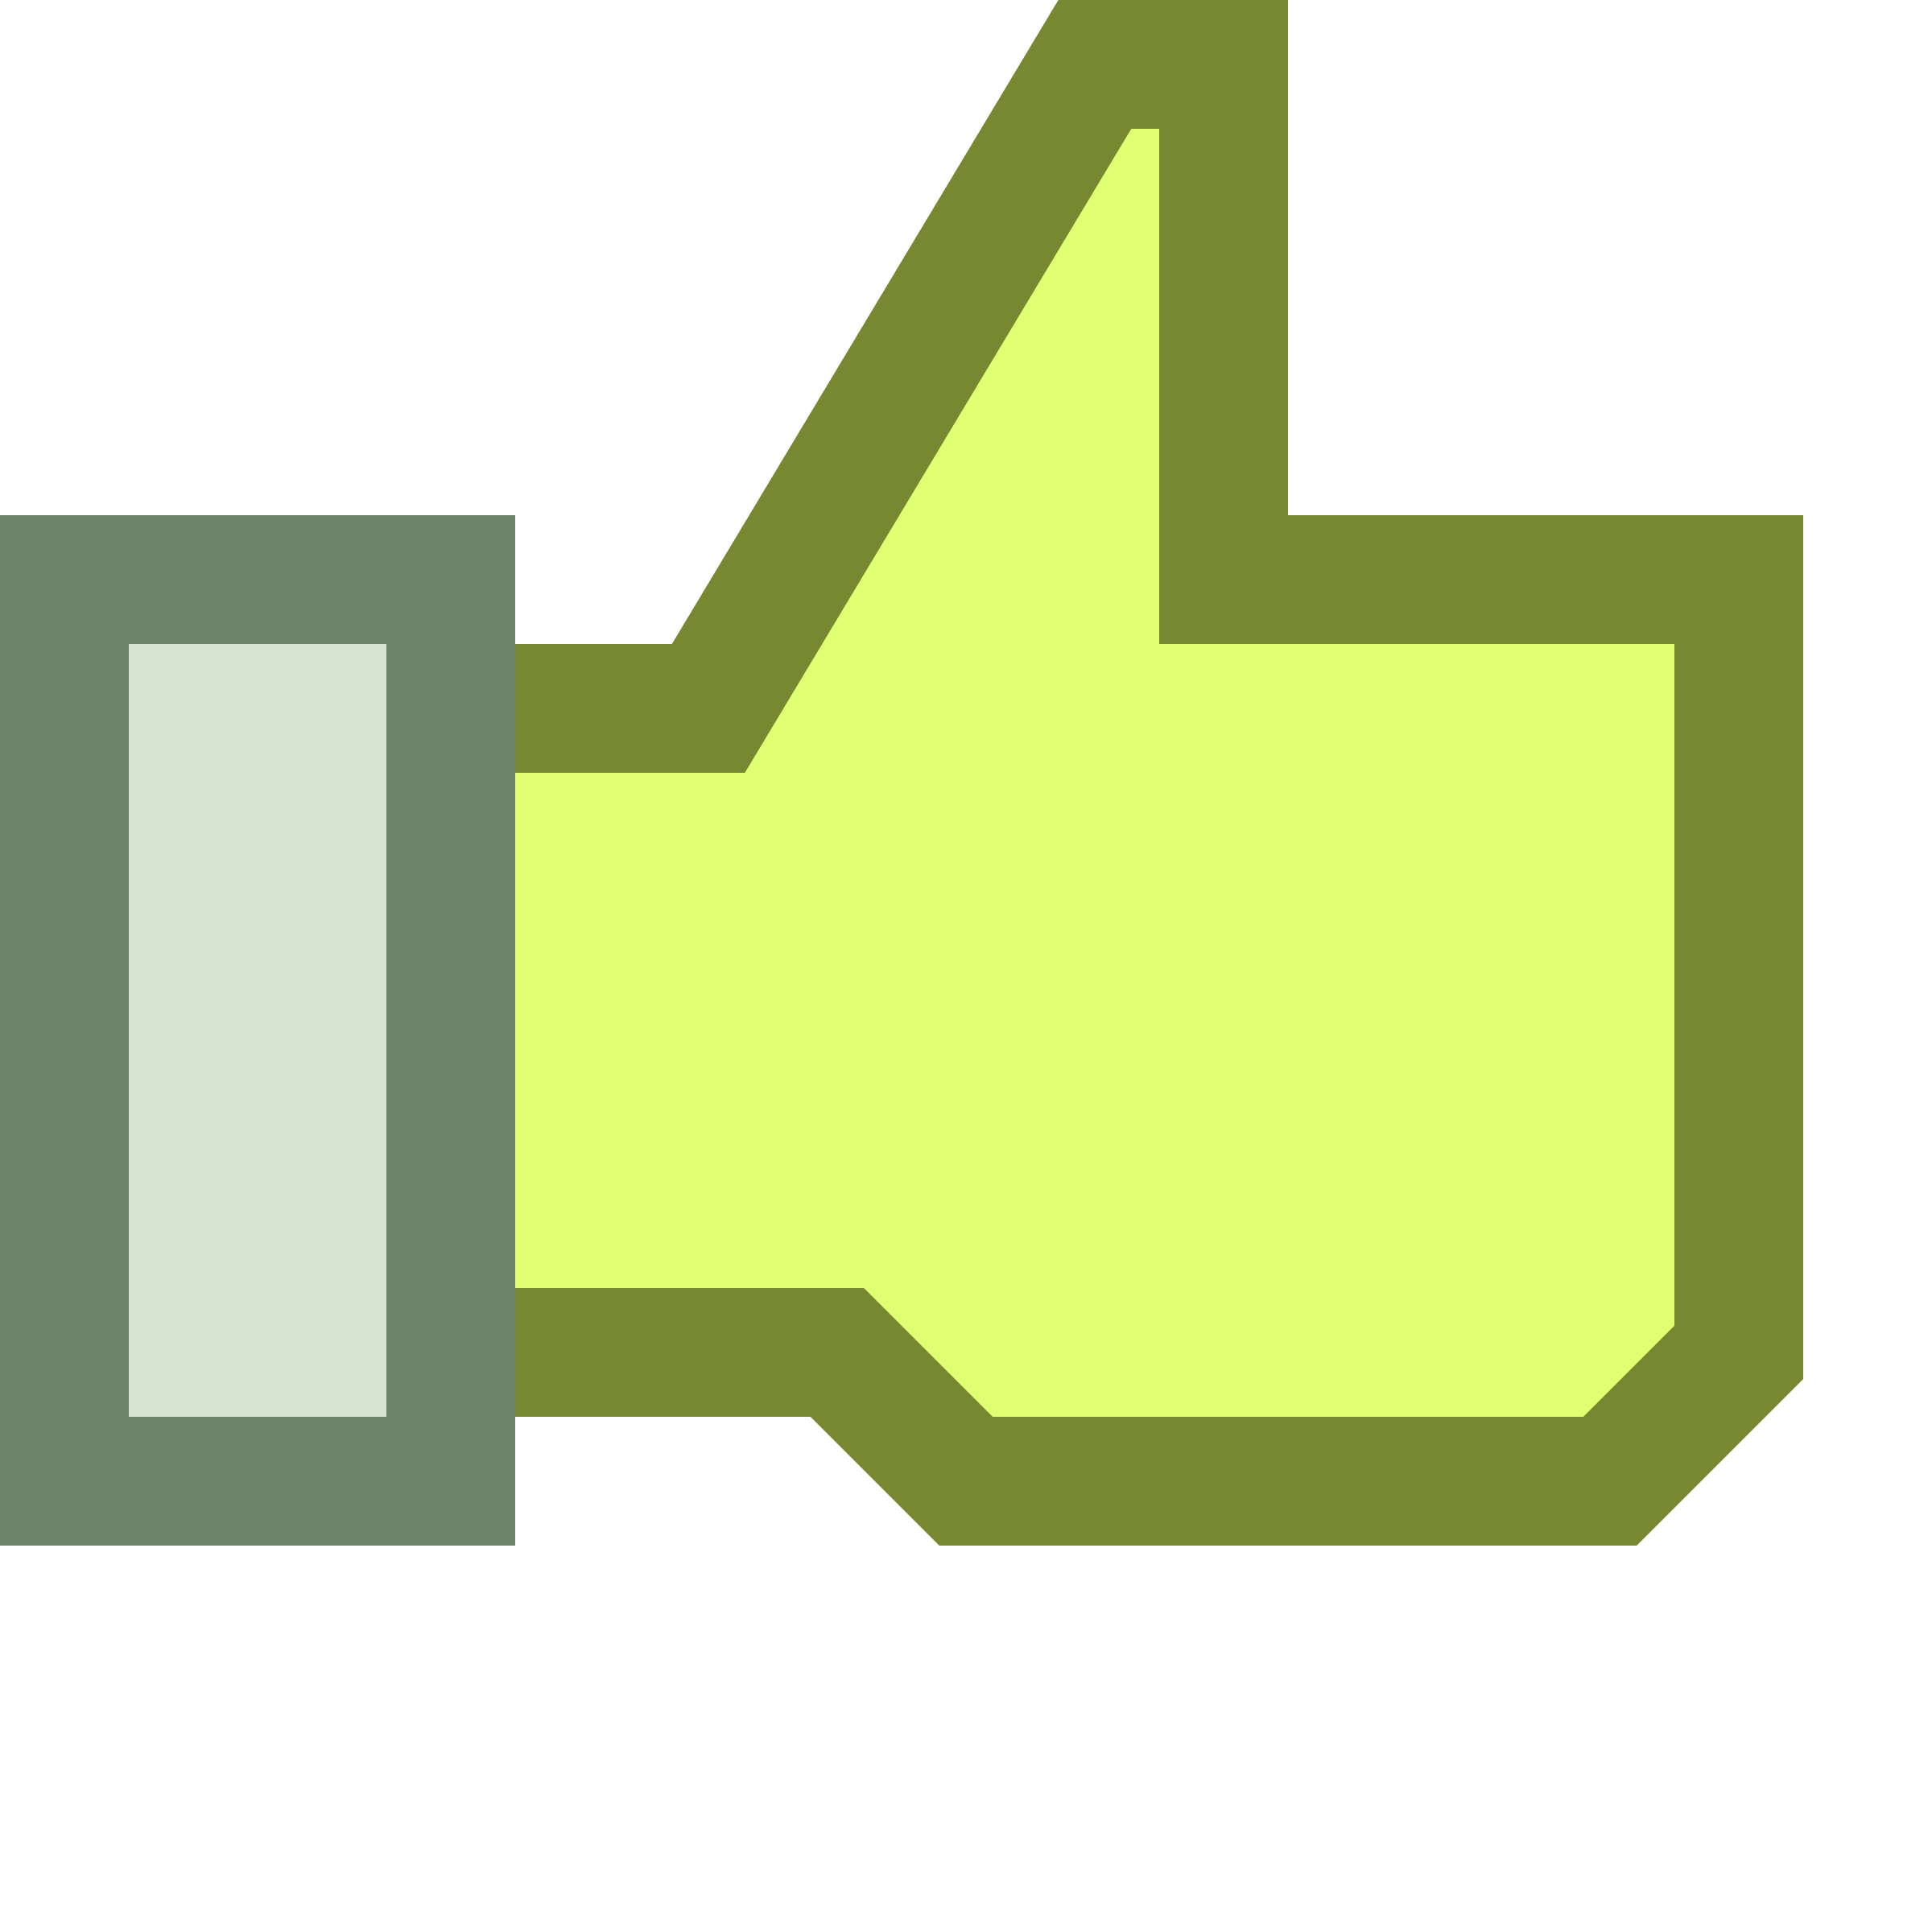 clipart thumb up like thumbs up clip art thumbs up clip art images